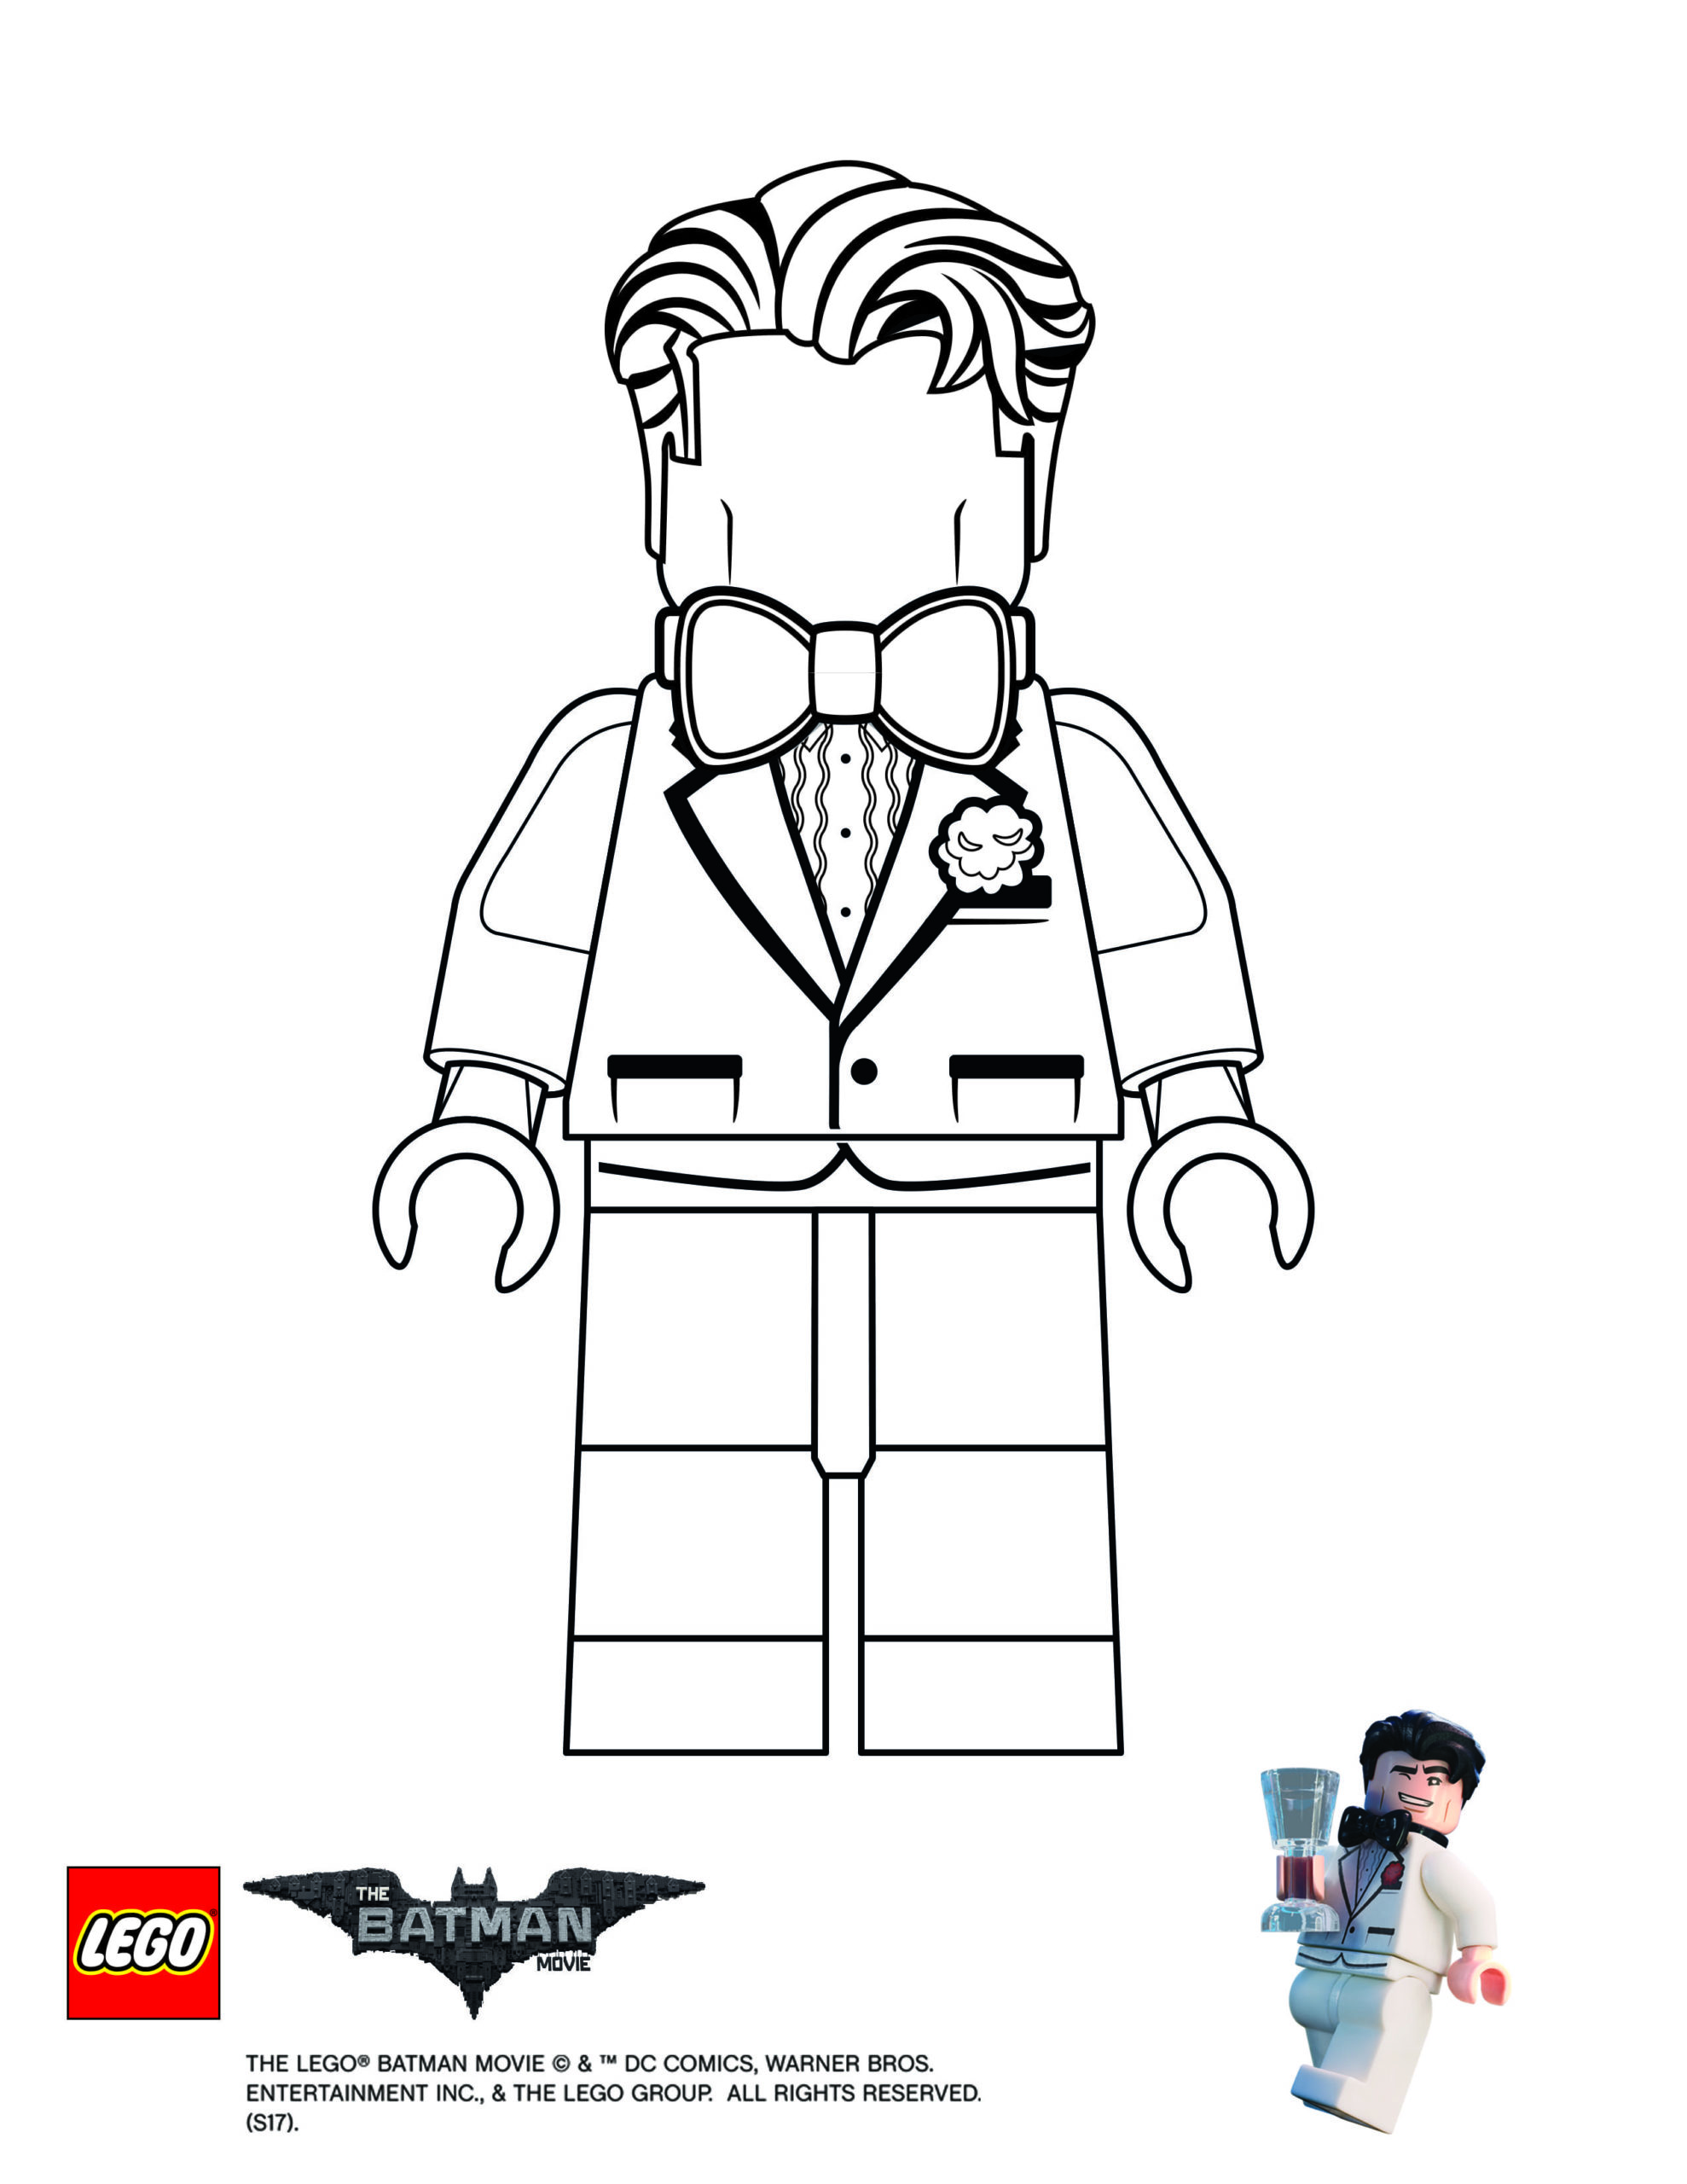 Cool Coloriage Lego Batman Movie 12 Pour votre Coloriage Books for Coloriage Lego Batman Movie